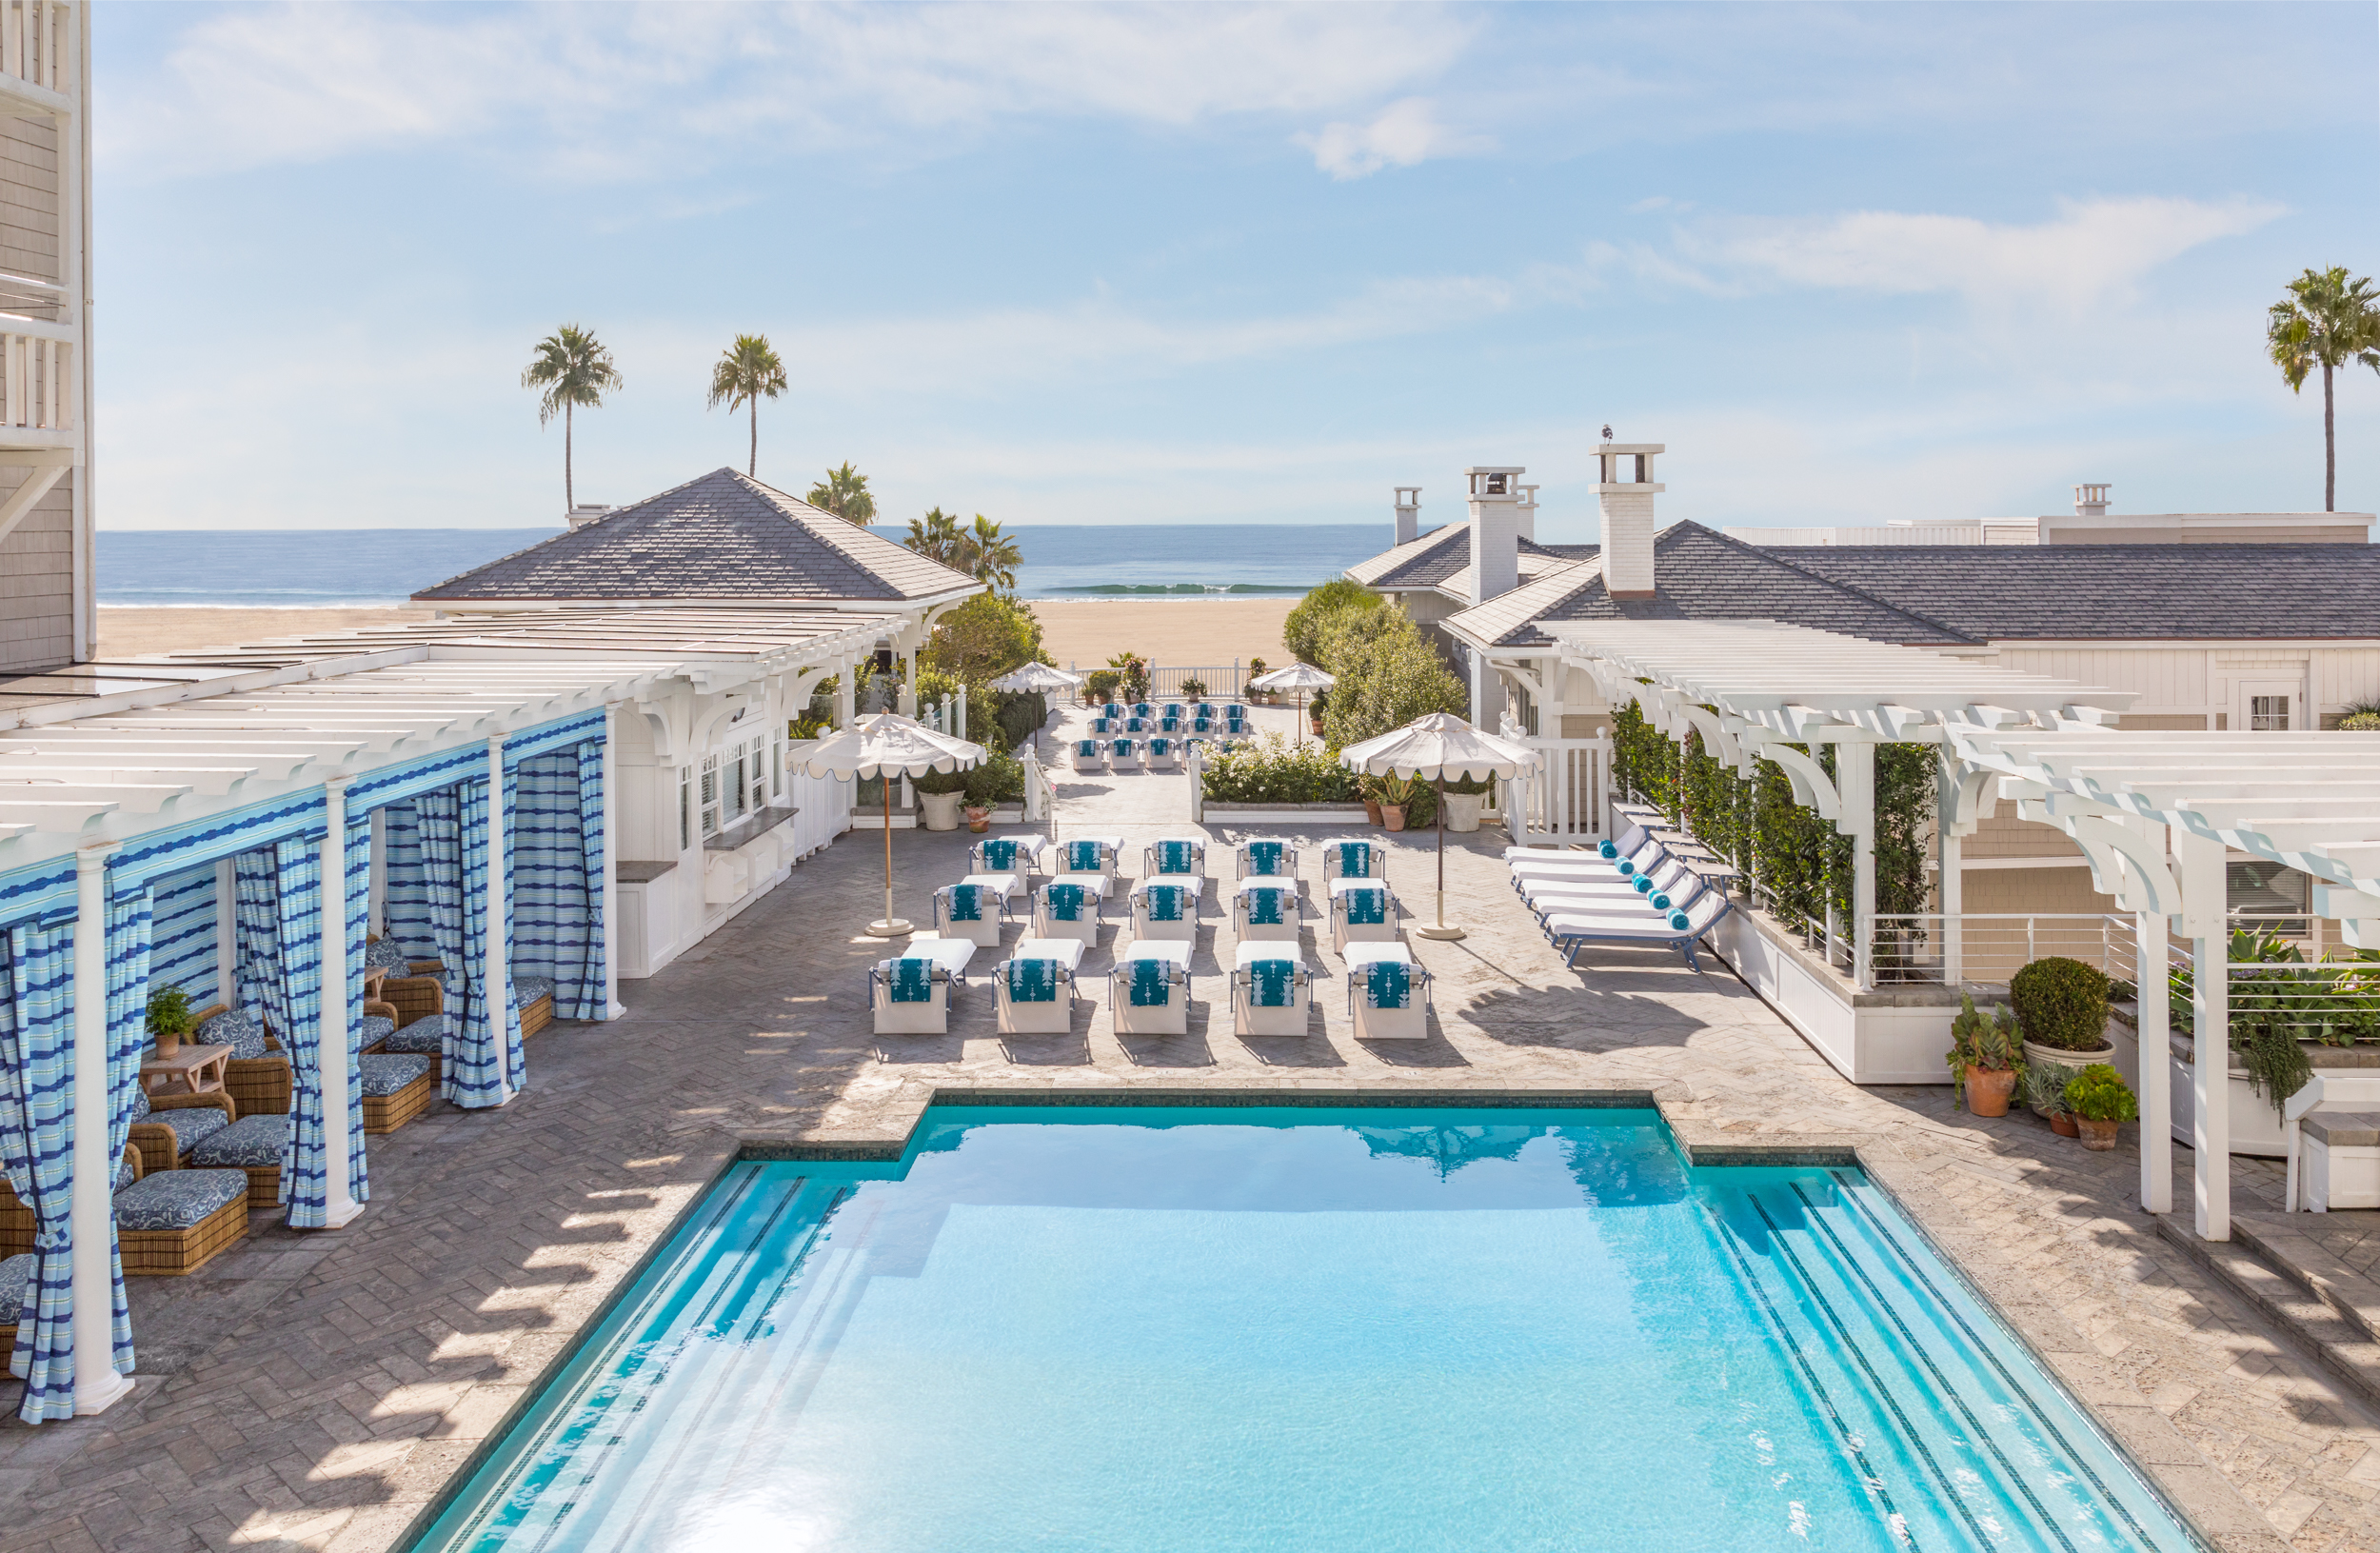 Santa Monica Hotel - Luxury Beach Hotel | The Iconic